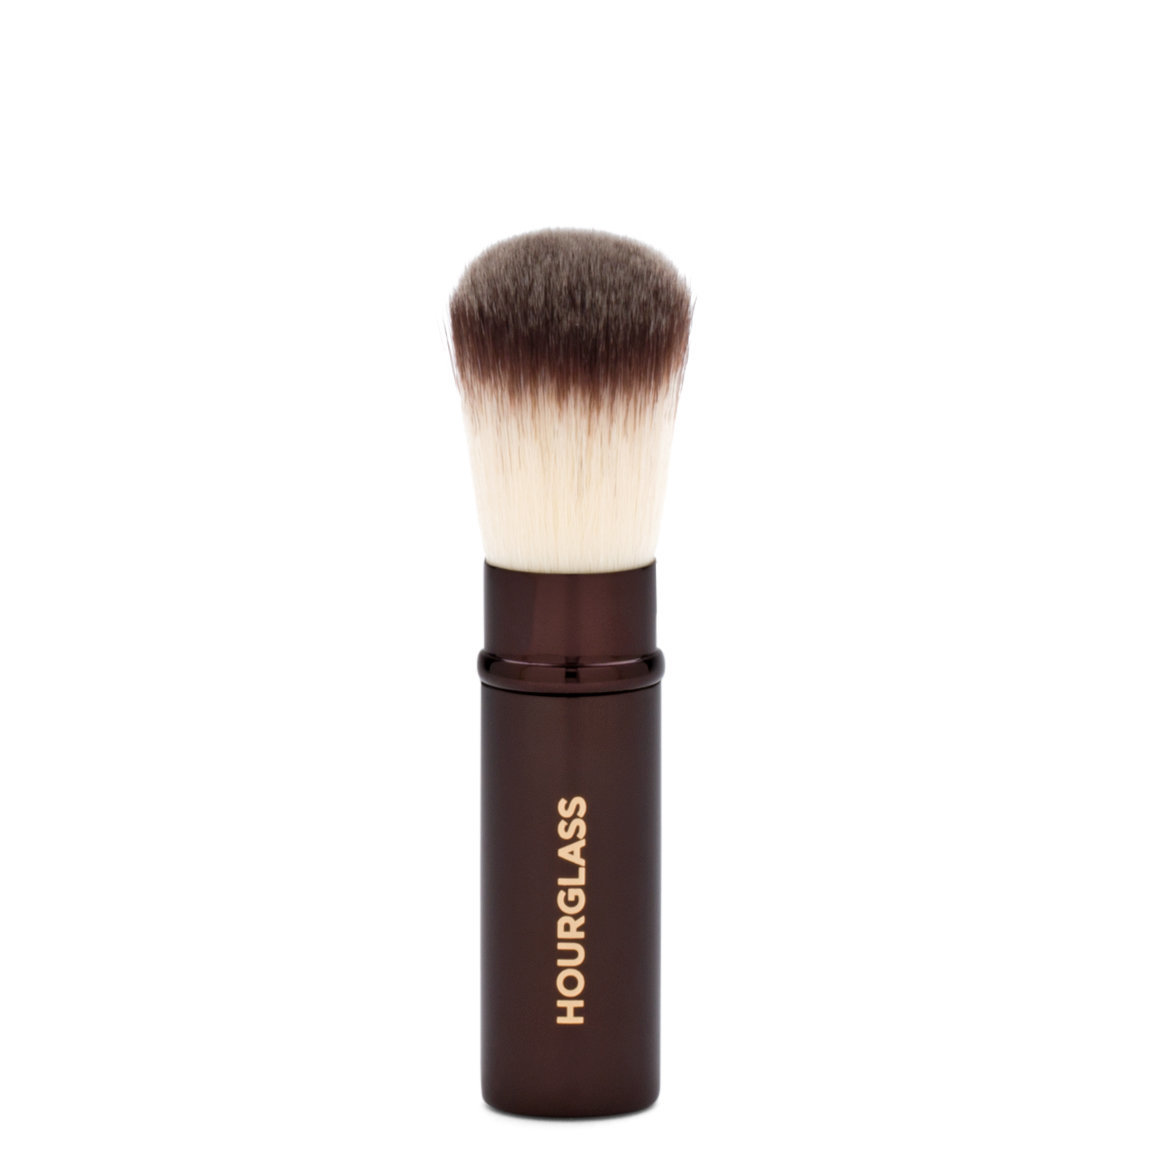 Hourglass Retractable Foundation Brush product swatch.